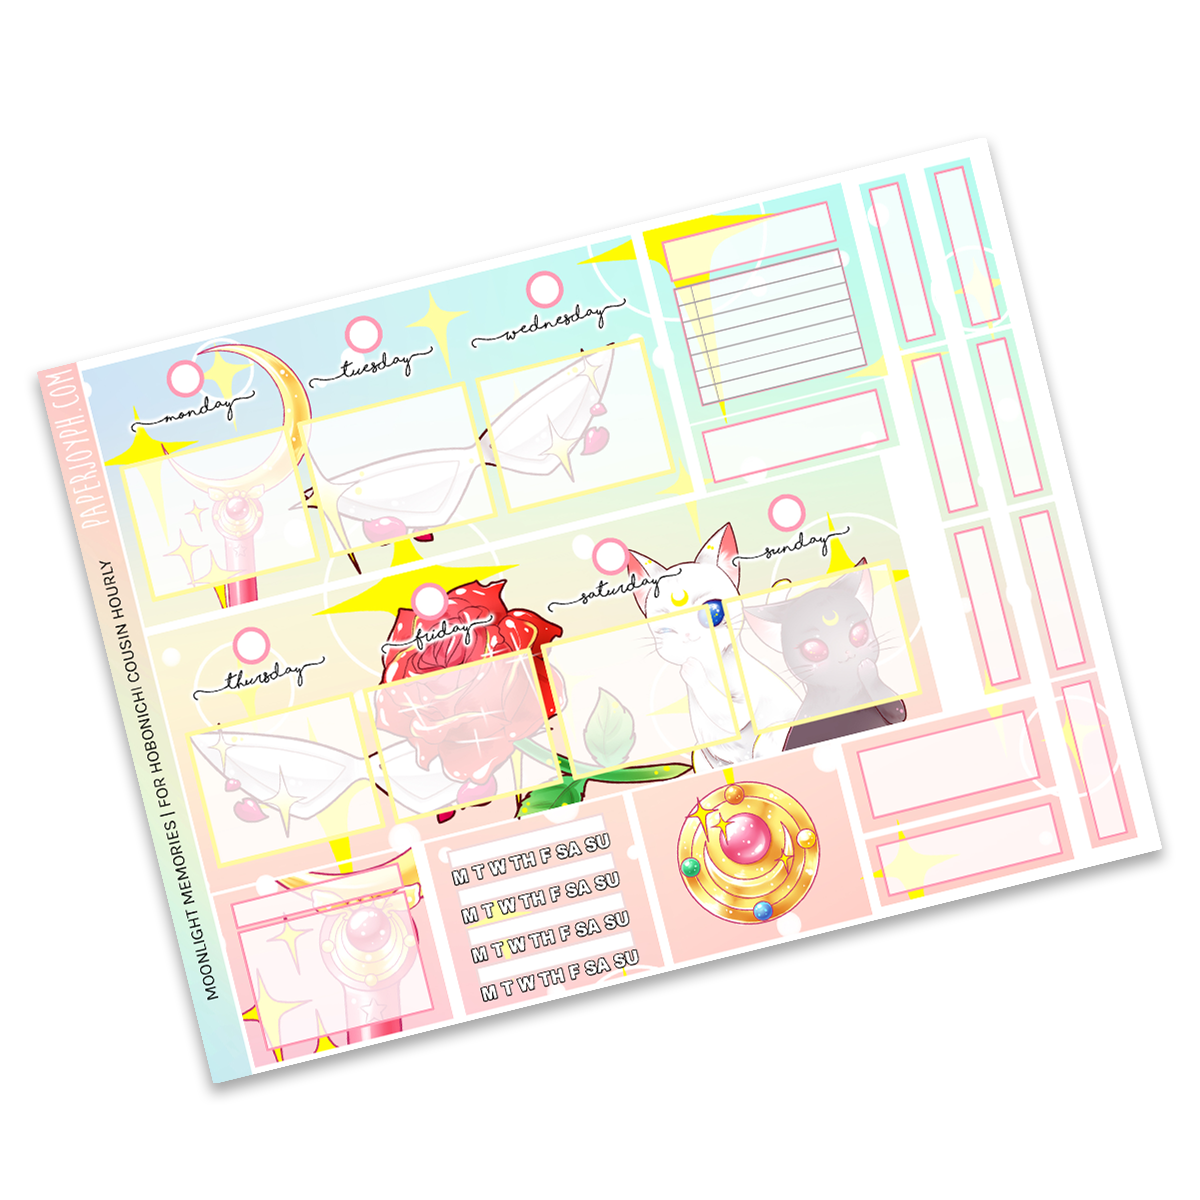 HOBONICHI COUSIN | HOURLY STICKER KIT | Moonlight Memories